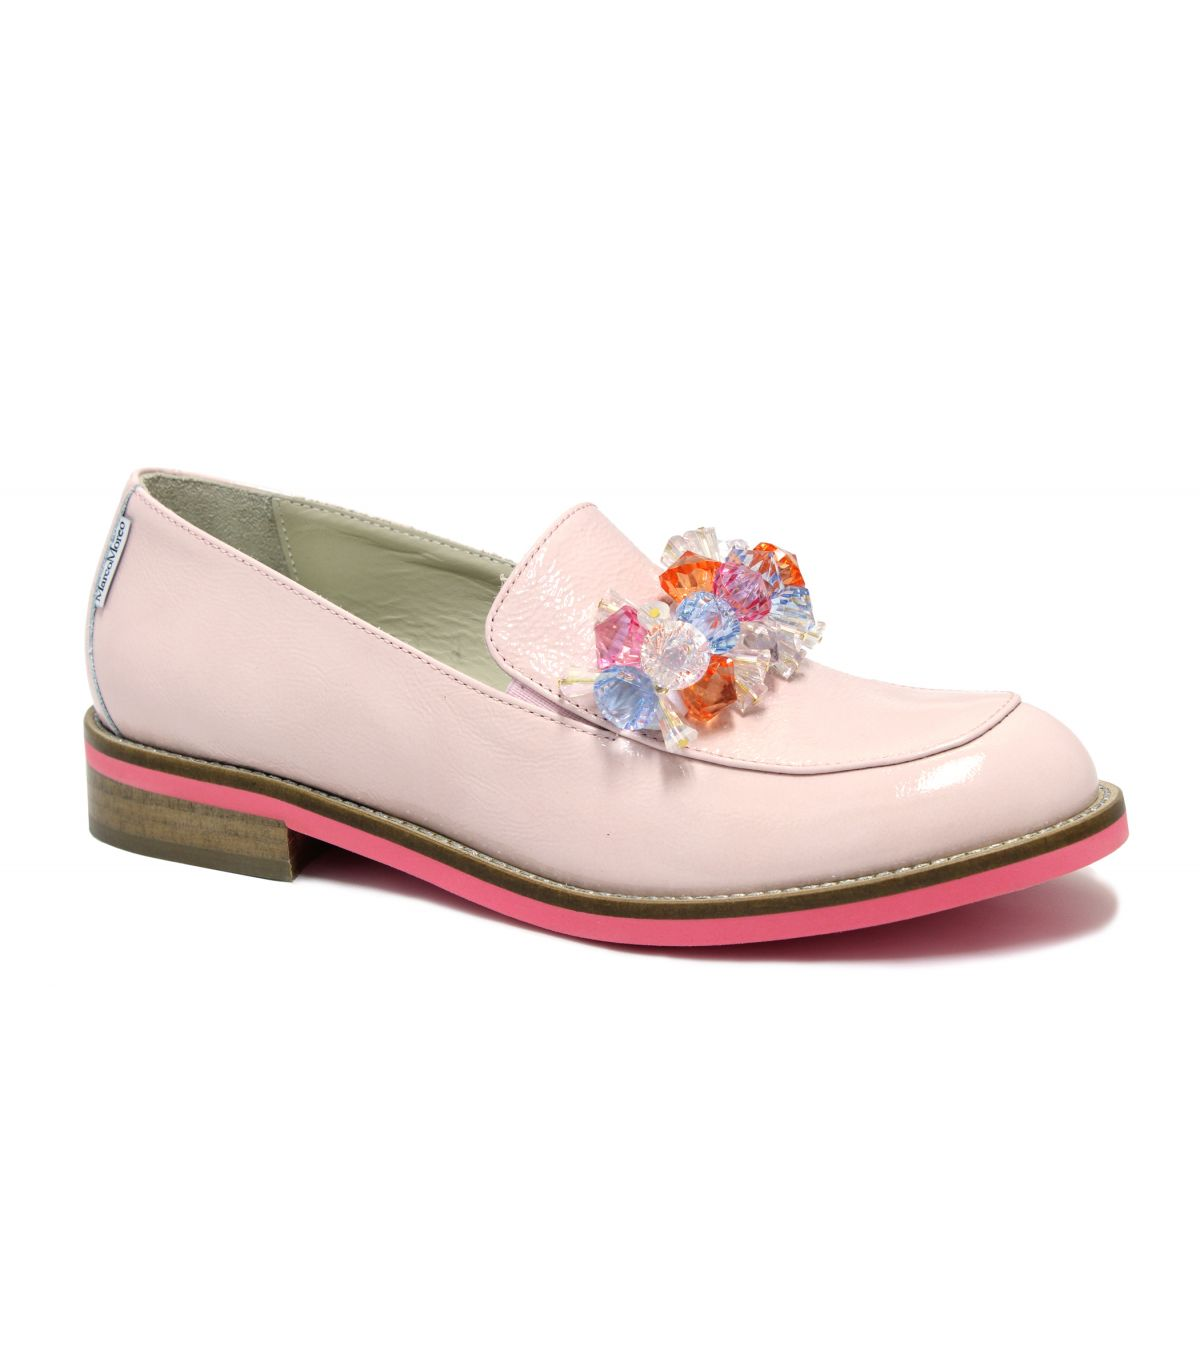 MARCO MOREO Pale Pink Patent Loafer With Jewels Lynn Image